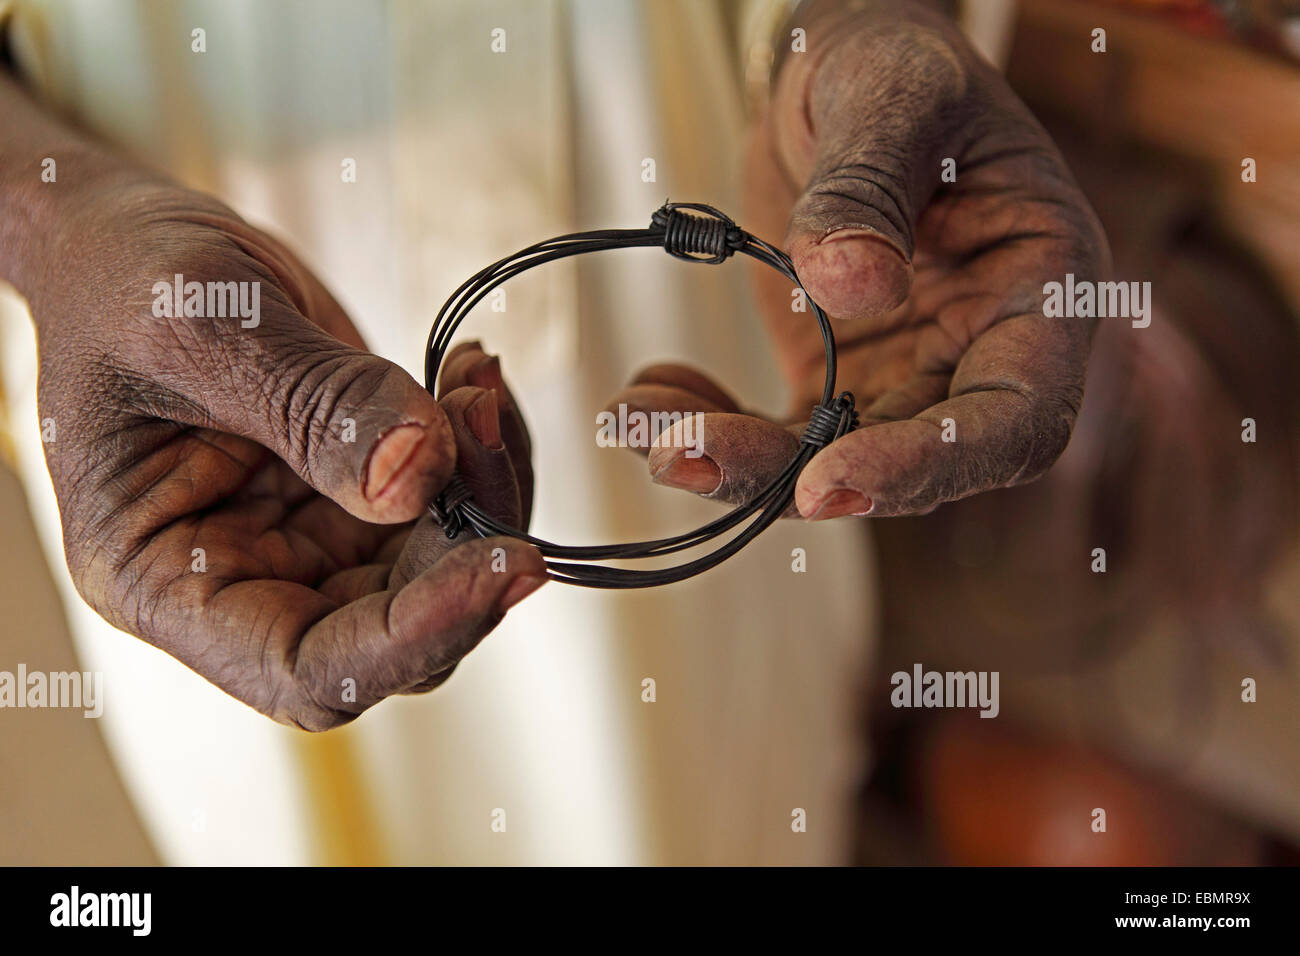 Hands holding a bangle made from elephant tail bristles, Garoua, North Region, Cameroon - Stock Image